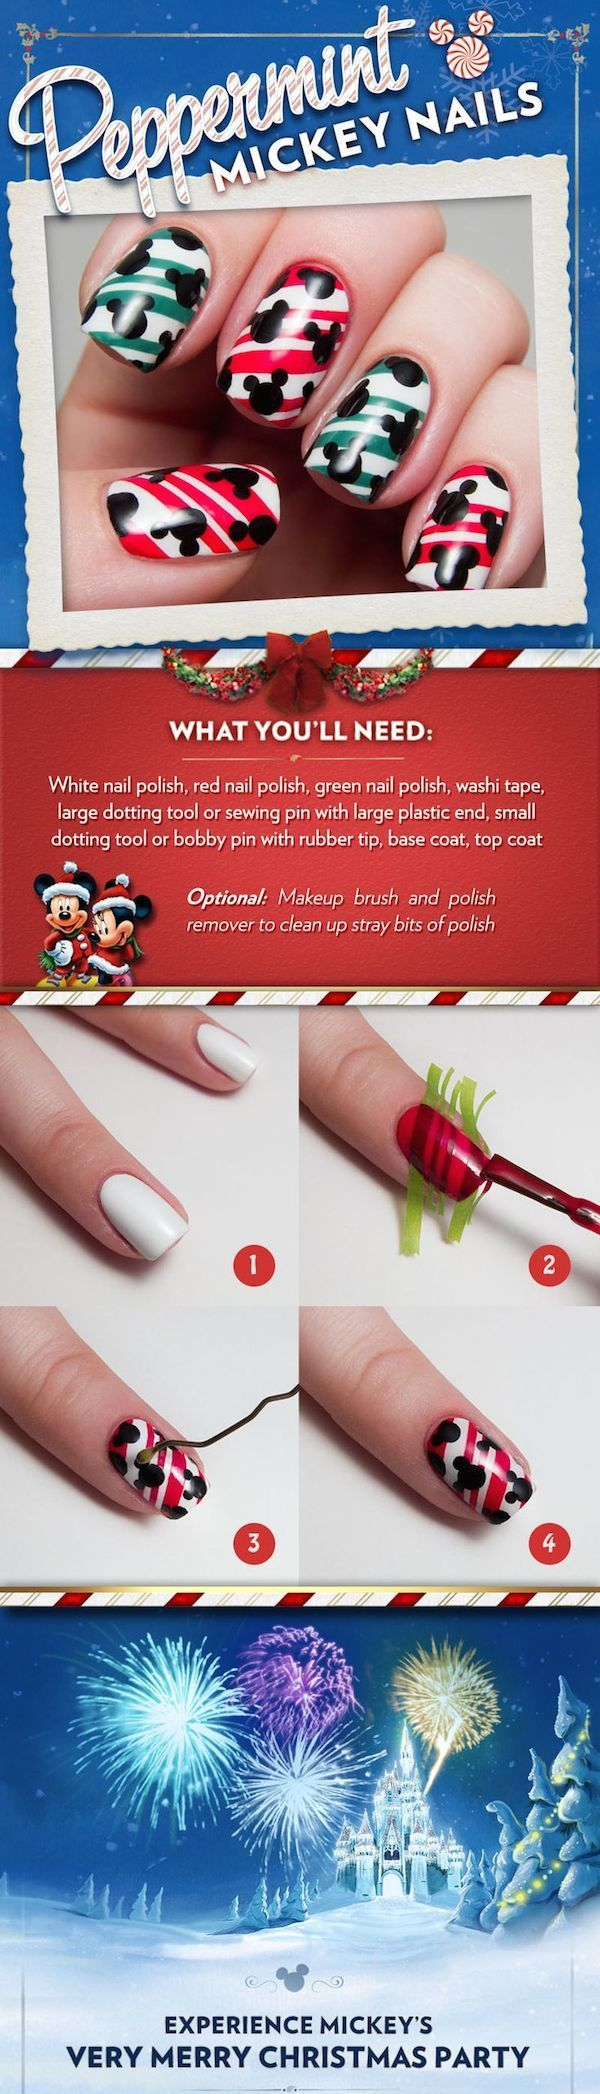 "Heading to a holiday party this season? Or better yet, are you spending the holidays here at Walt Disney World Resort? If your answer to either question is ""yes,"" then consider adding this ""Peppermint Mickey"" nail design into your holiday look."